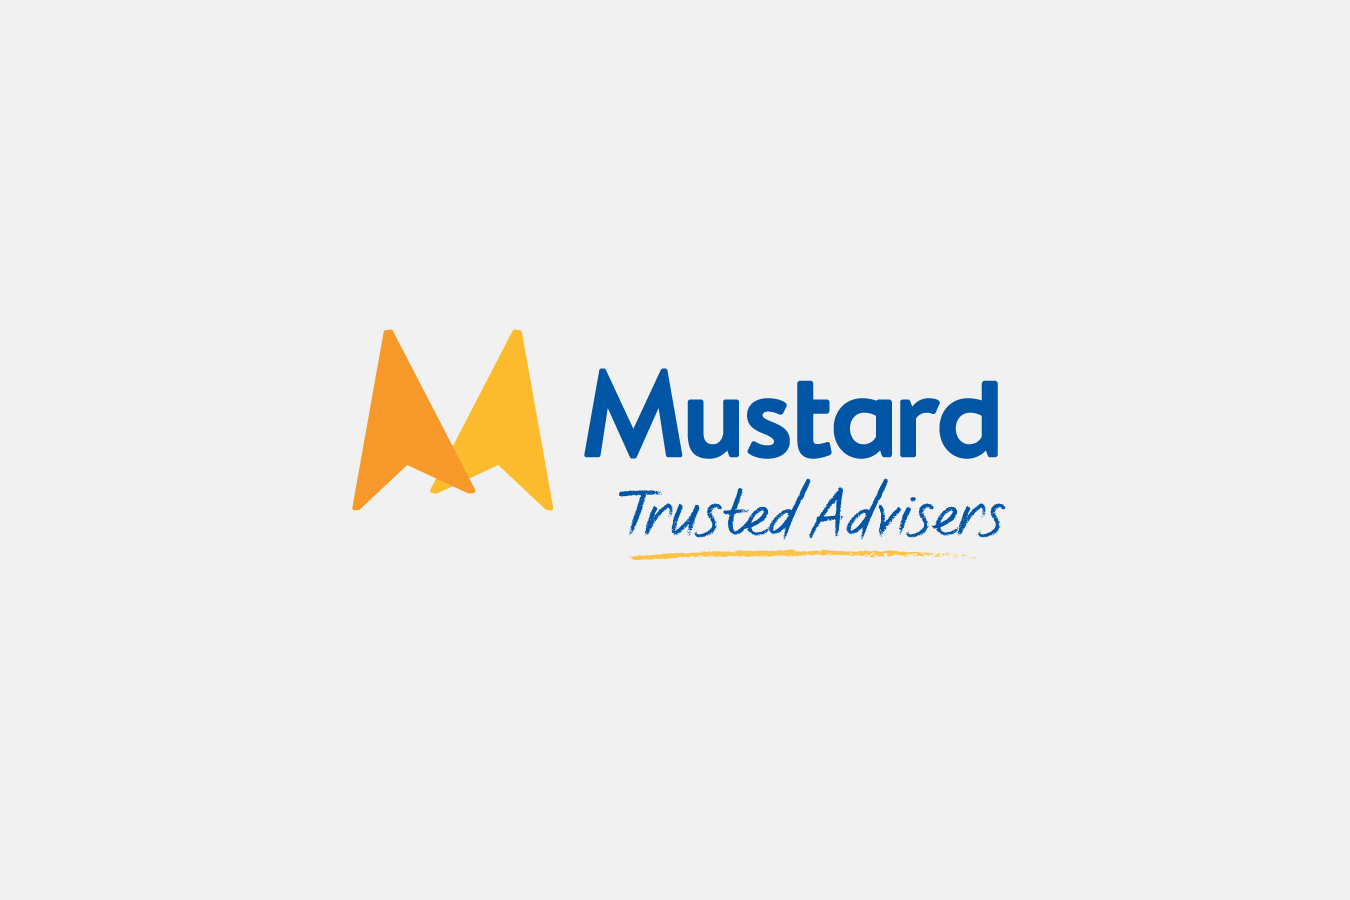 mustard-business-advisory-hdd